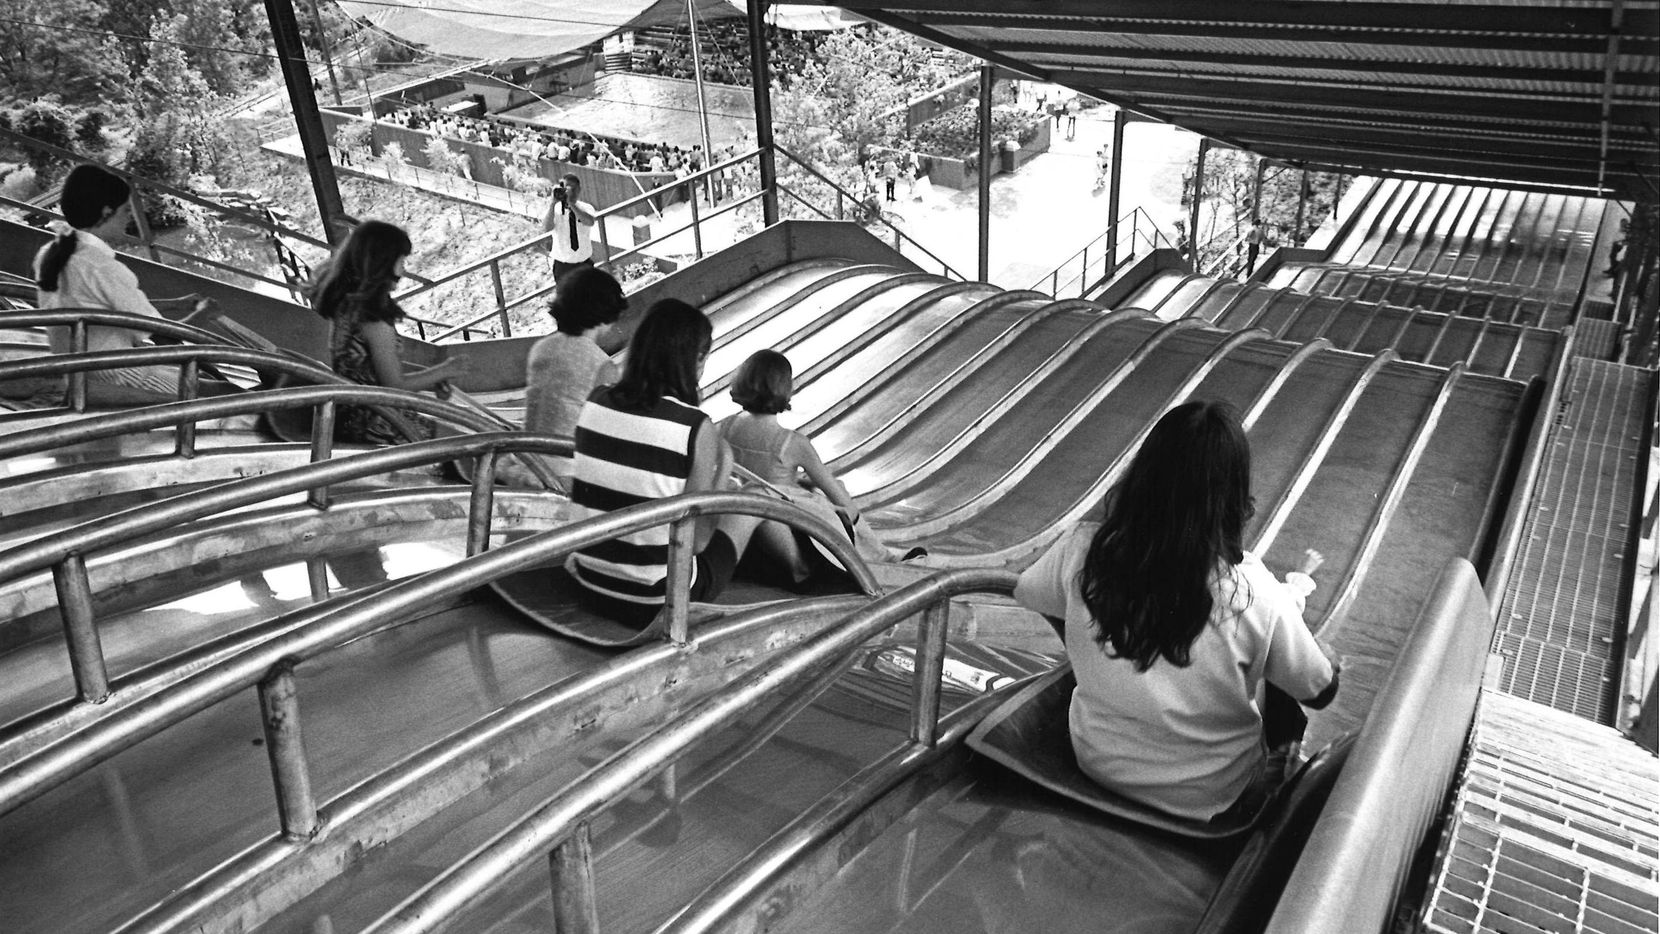 A 'super slide' that opened at Six flags in 1969. It's not the Texas Giant but it sure is something.